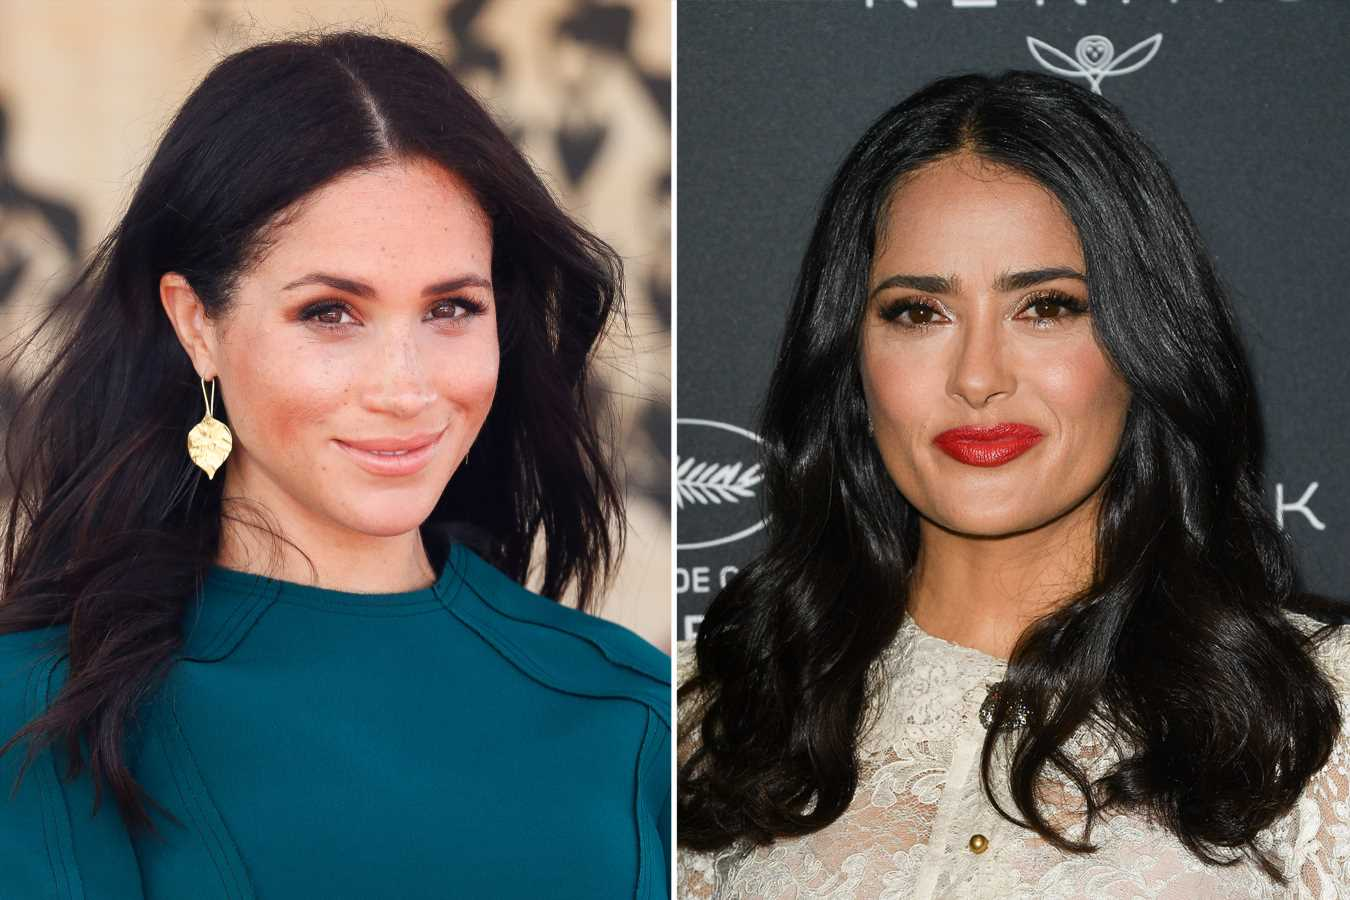 Salma Hayek on Her Secret Phone Call with Meghan Markle and Why She Couldn't Even Tell Her Husband